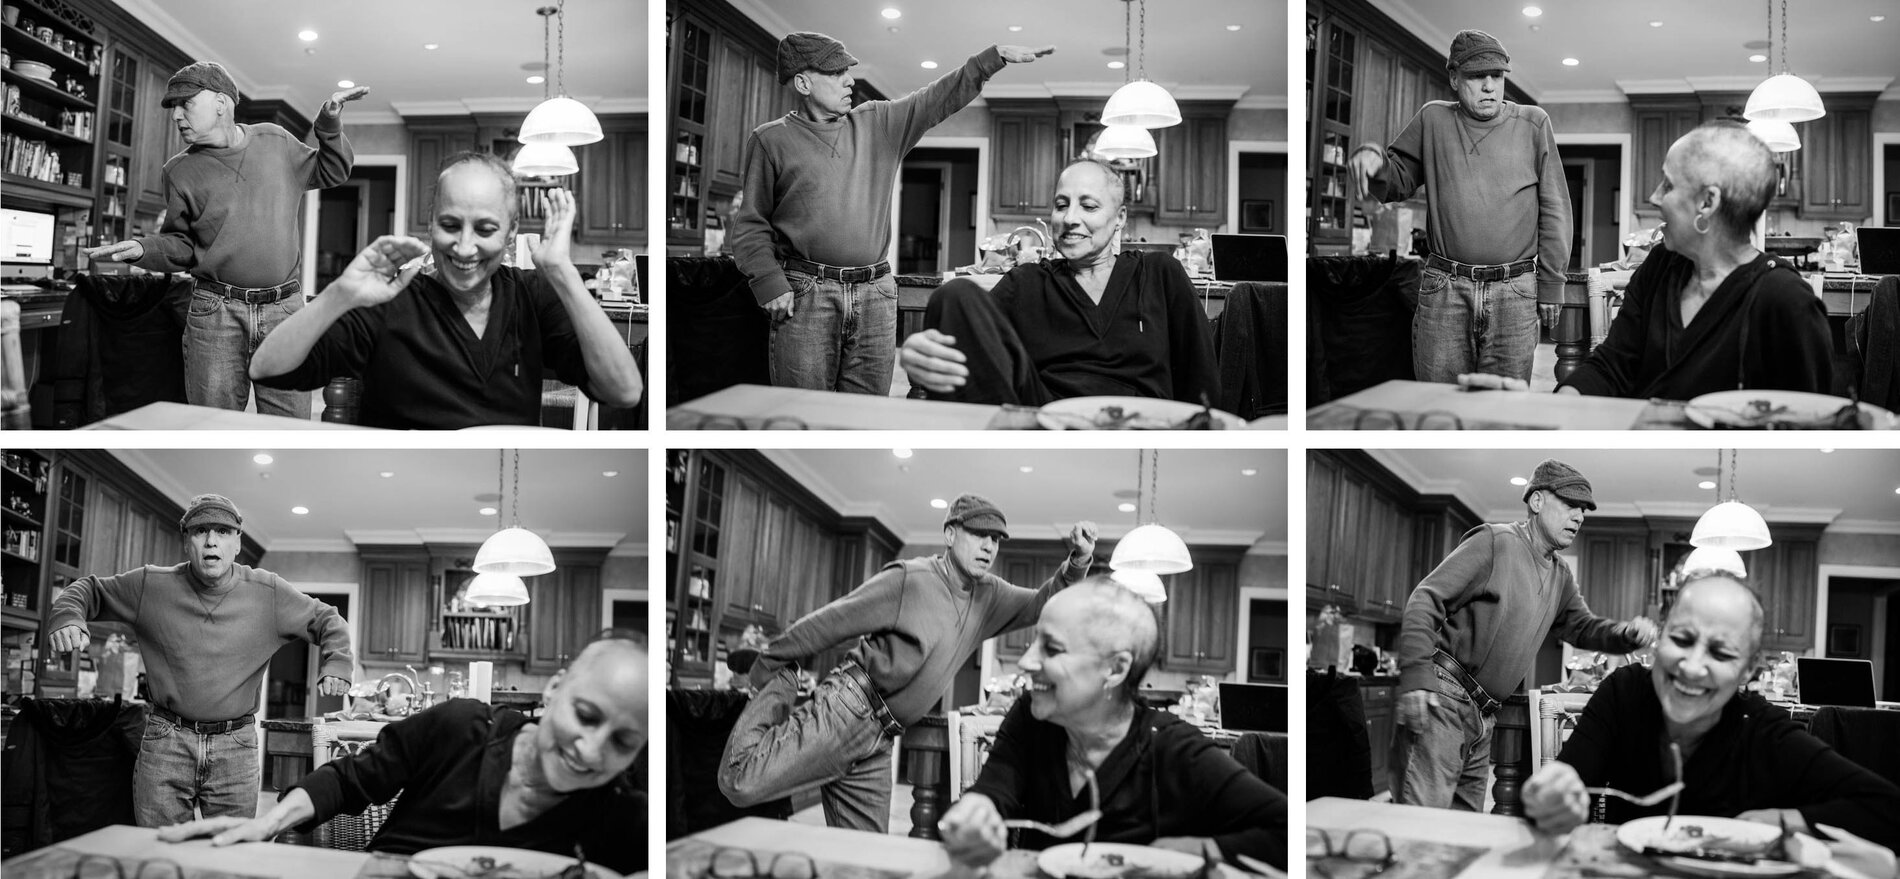 In the kitchen, Dad breaks into a bouncing dance to try to get a smile out of Mom. They often turned to humor to lighten the heavy mood in the home.     (Nancy Borowick)